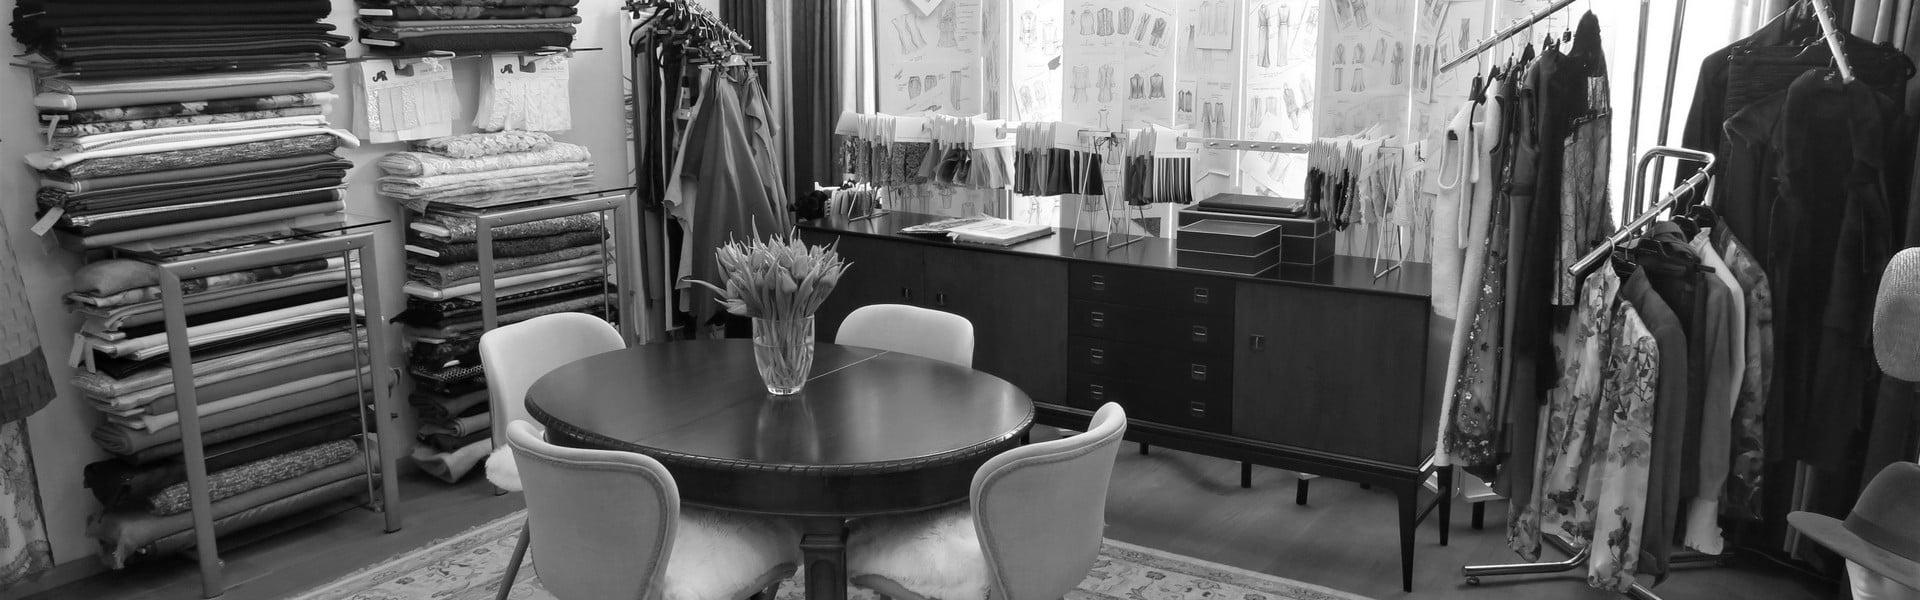 home-showroom-AvLCouture-DenHaag